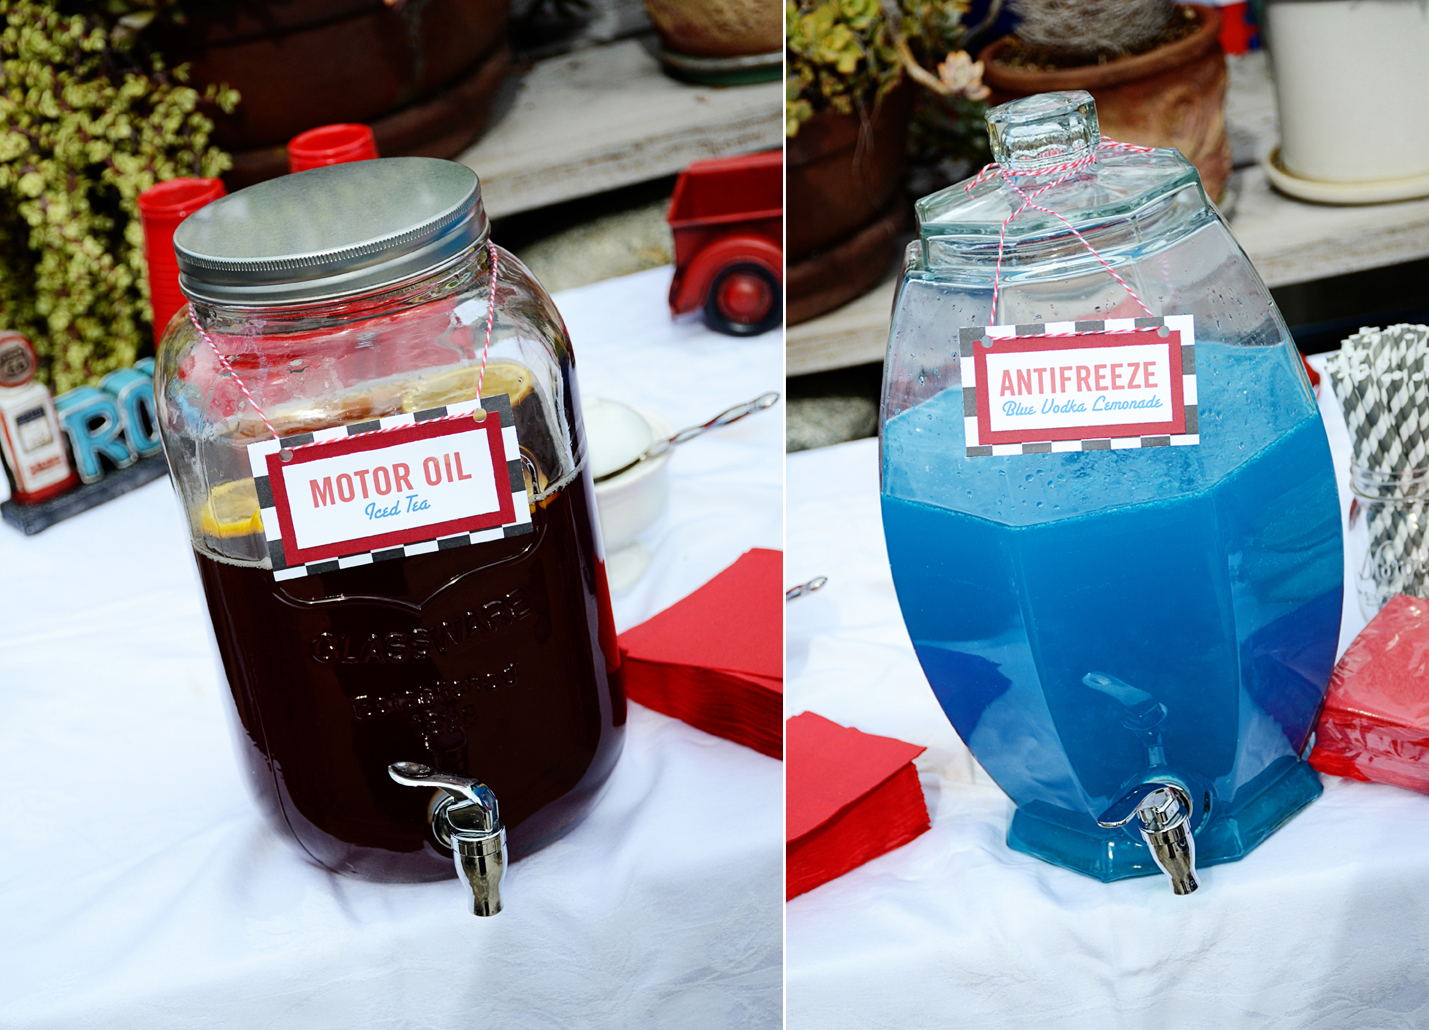 vintage cars and drag racing themed baby shower and party creating